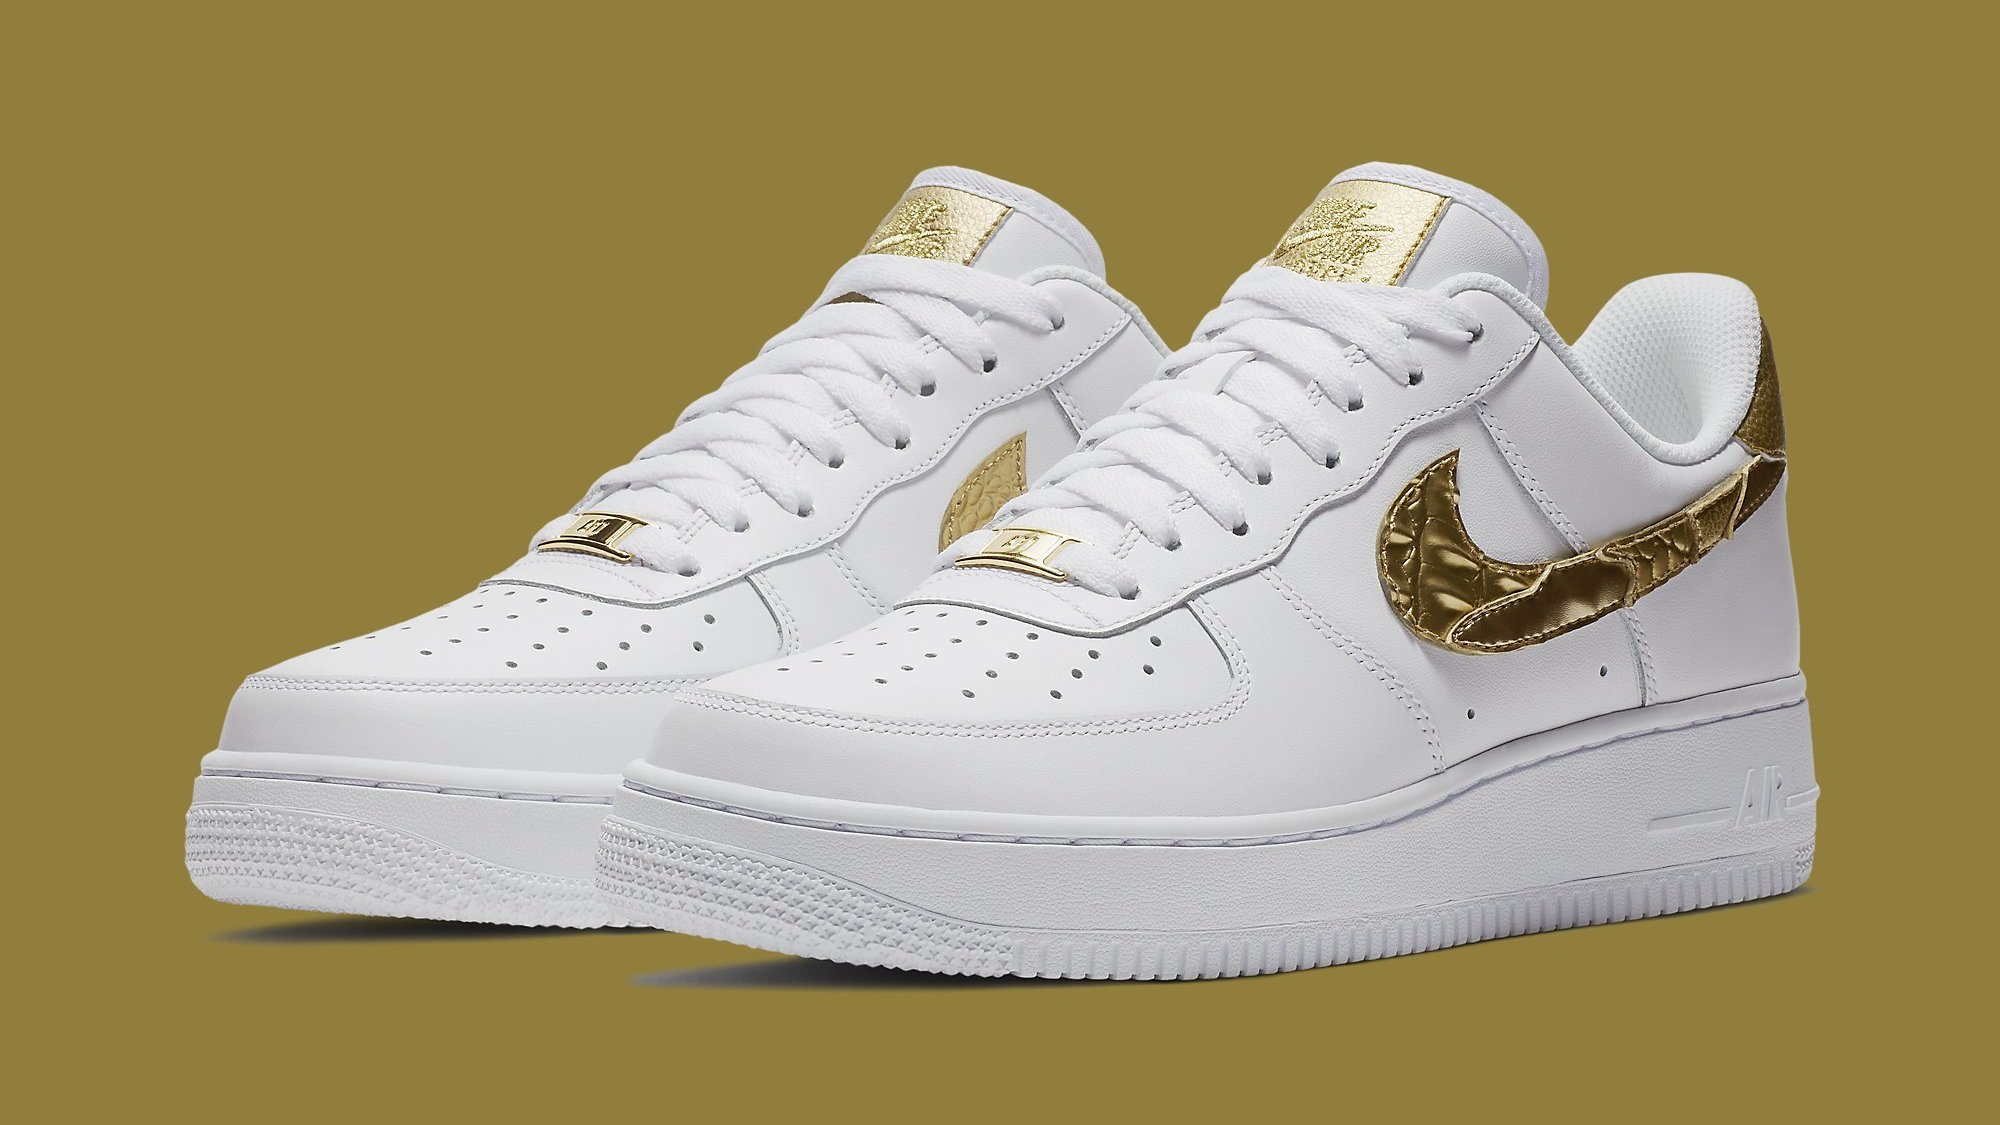 Nike Air Force 1s Inspired Cristiano Ronaldo Childhood | Sole ...